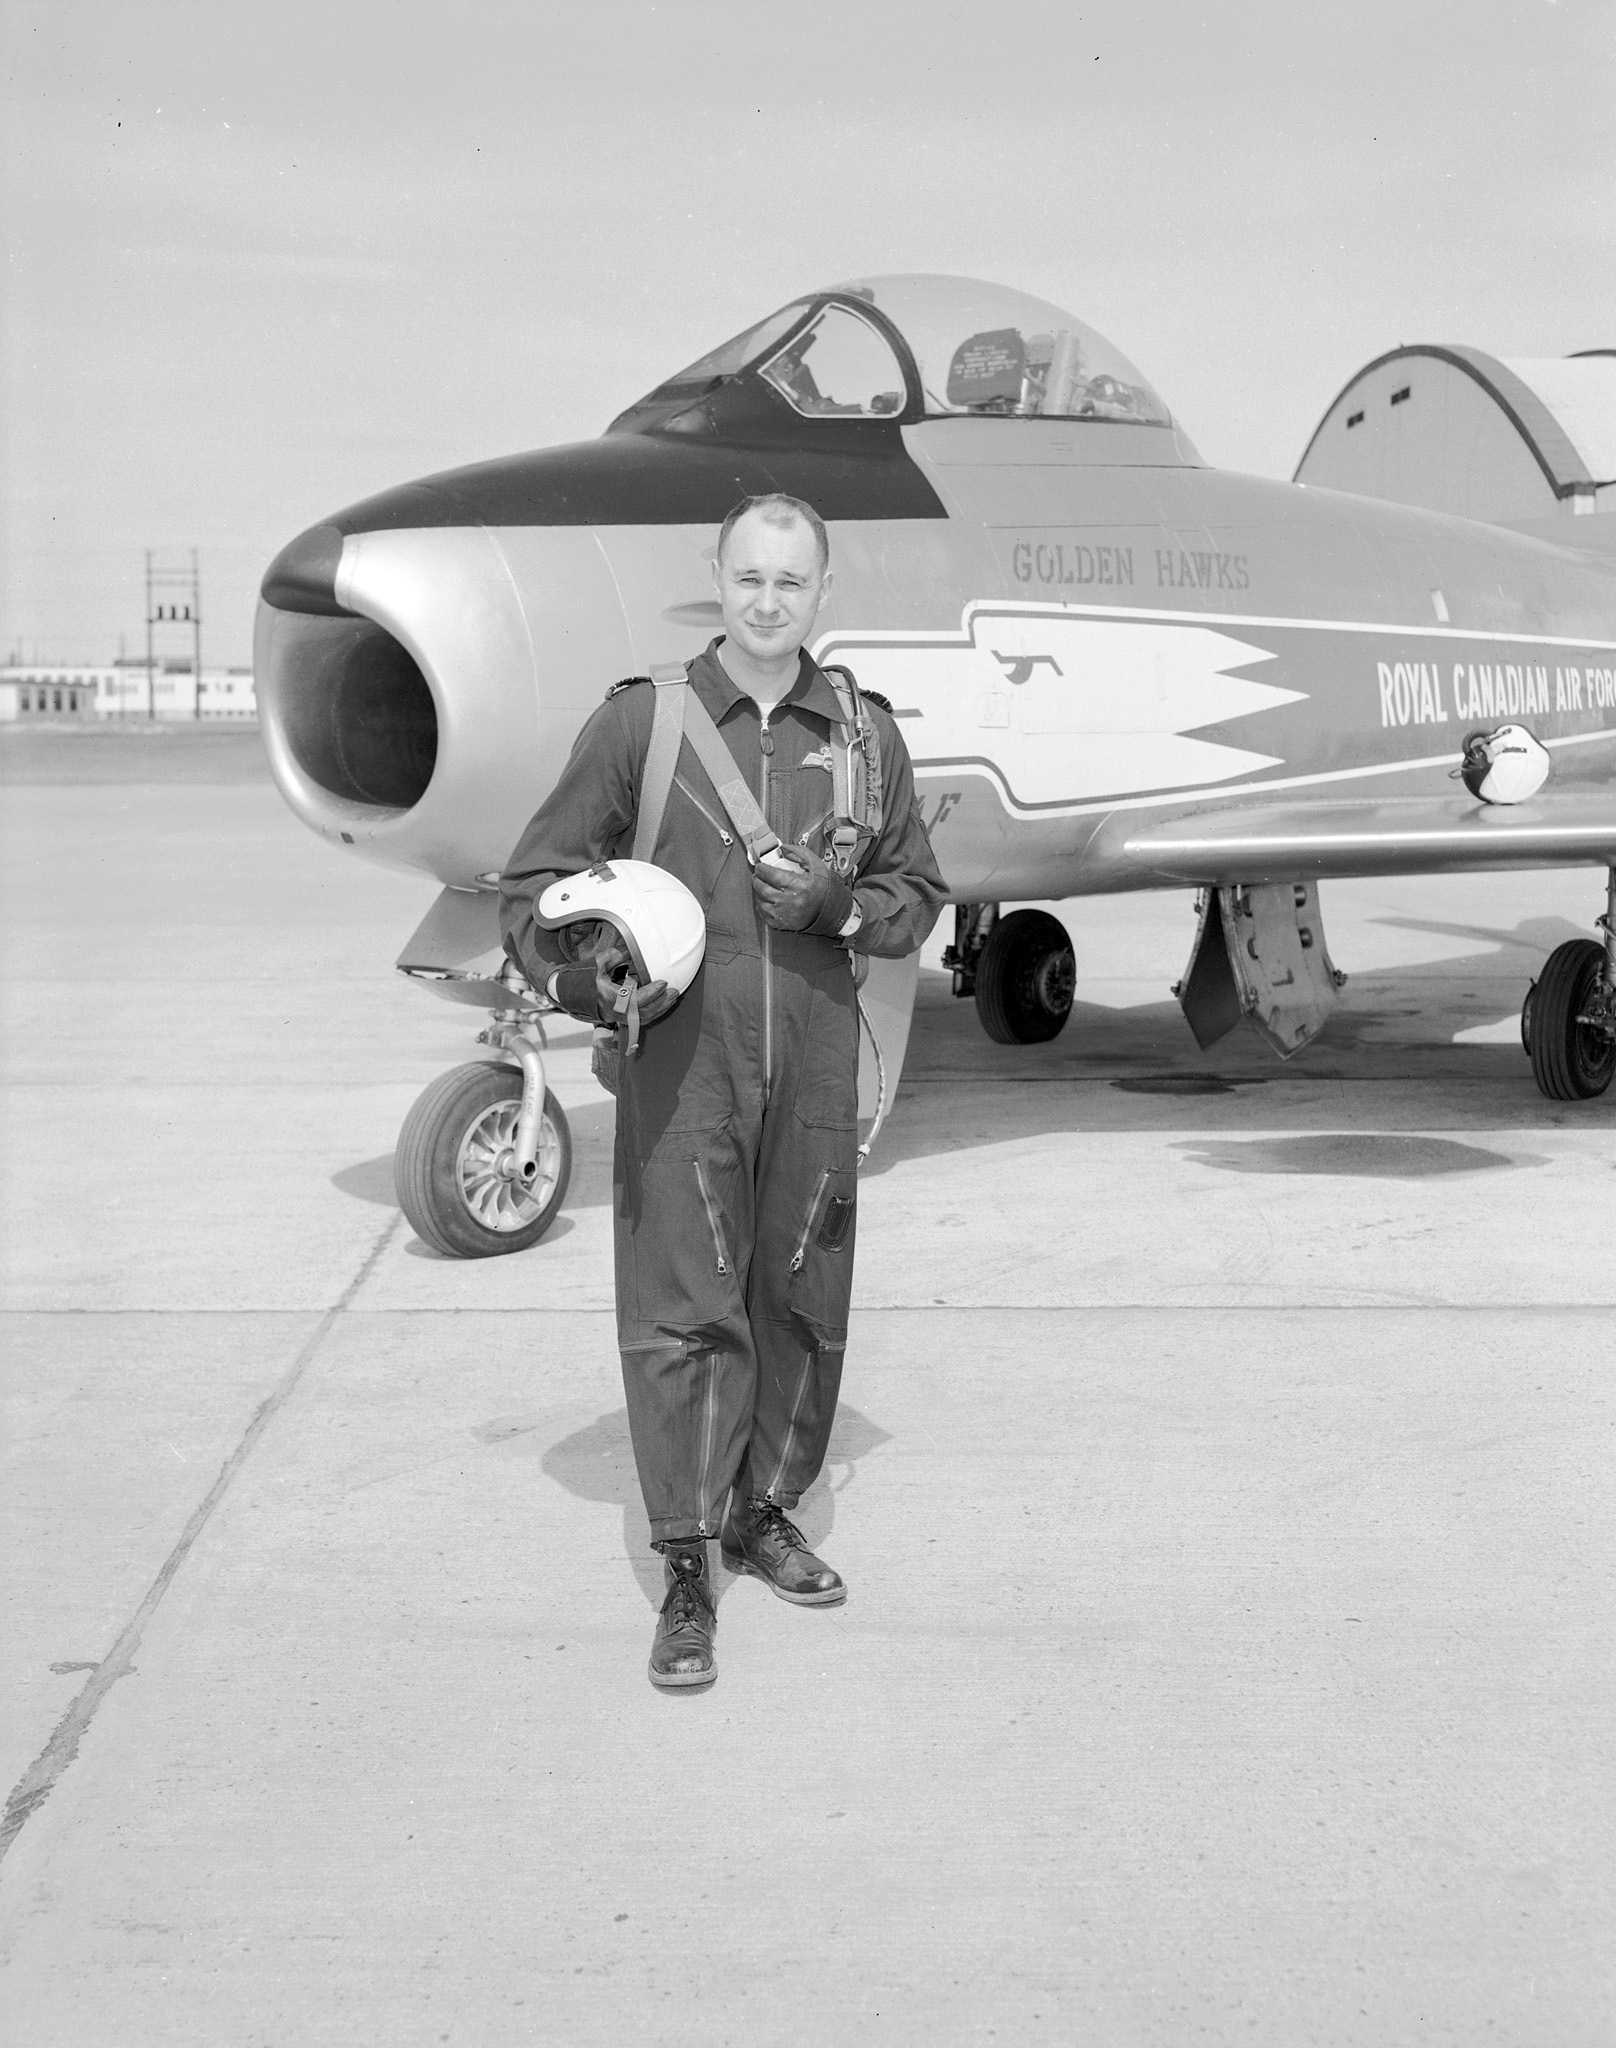 Squadron Leader Fern Villeneuve, leader of the Golden Hawks, walks away from his F-36 Sabre after a formation practice. PHOTO: DND Archives, PL 64157